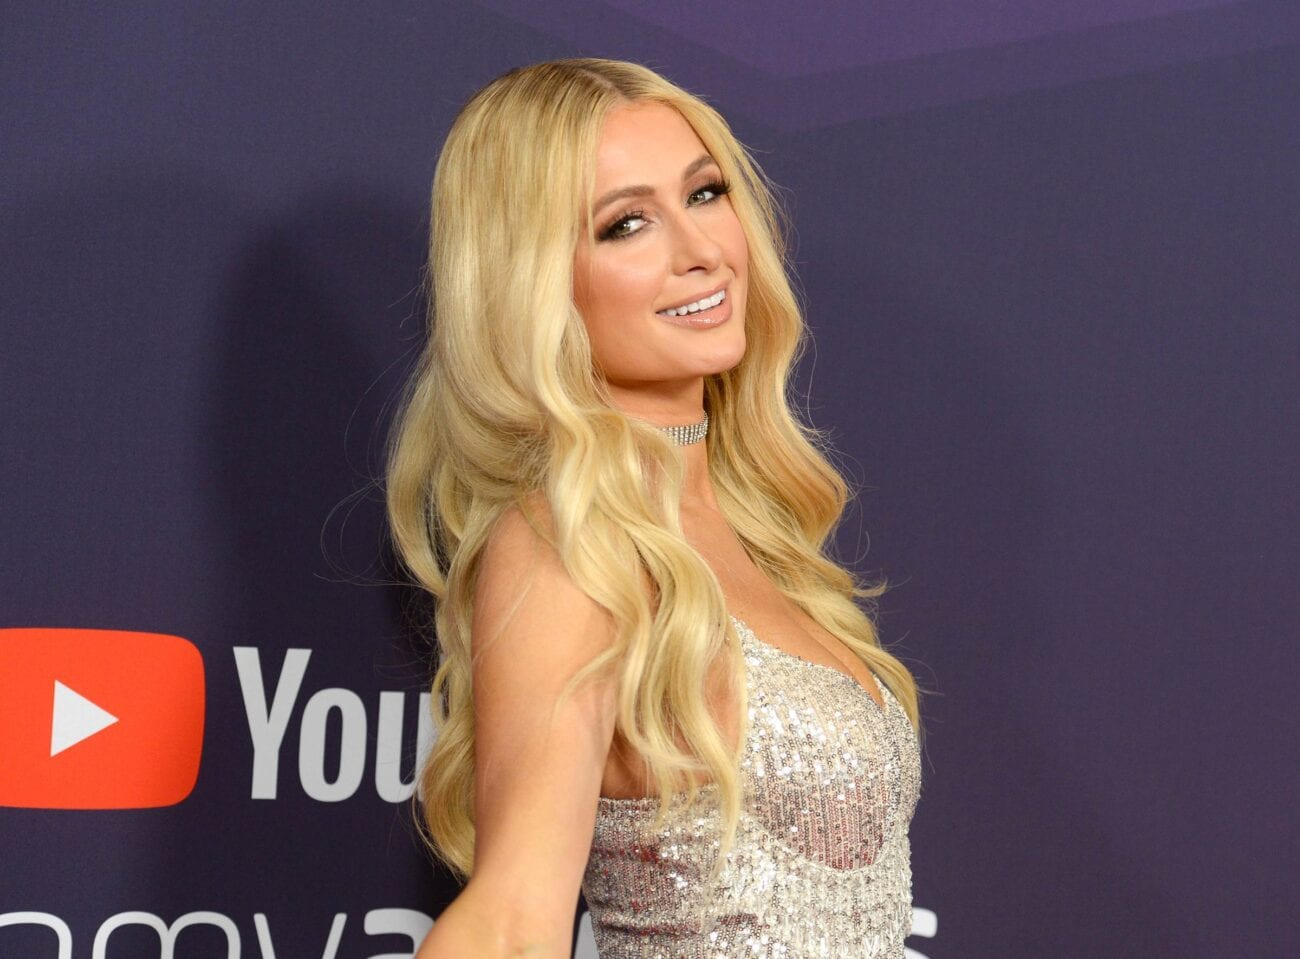 Paris Hilton recently released a new documentary looking back on certain moments of her life, including her sex tape. Here's what she says about it.